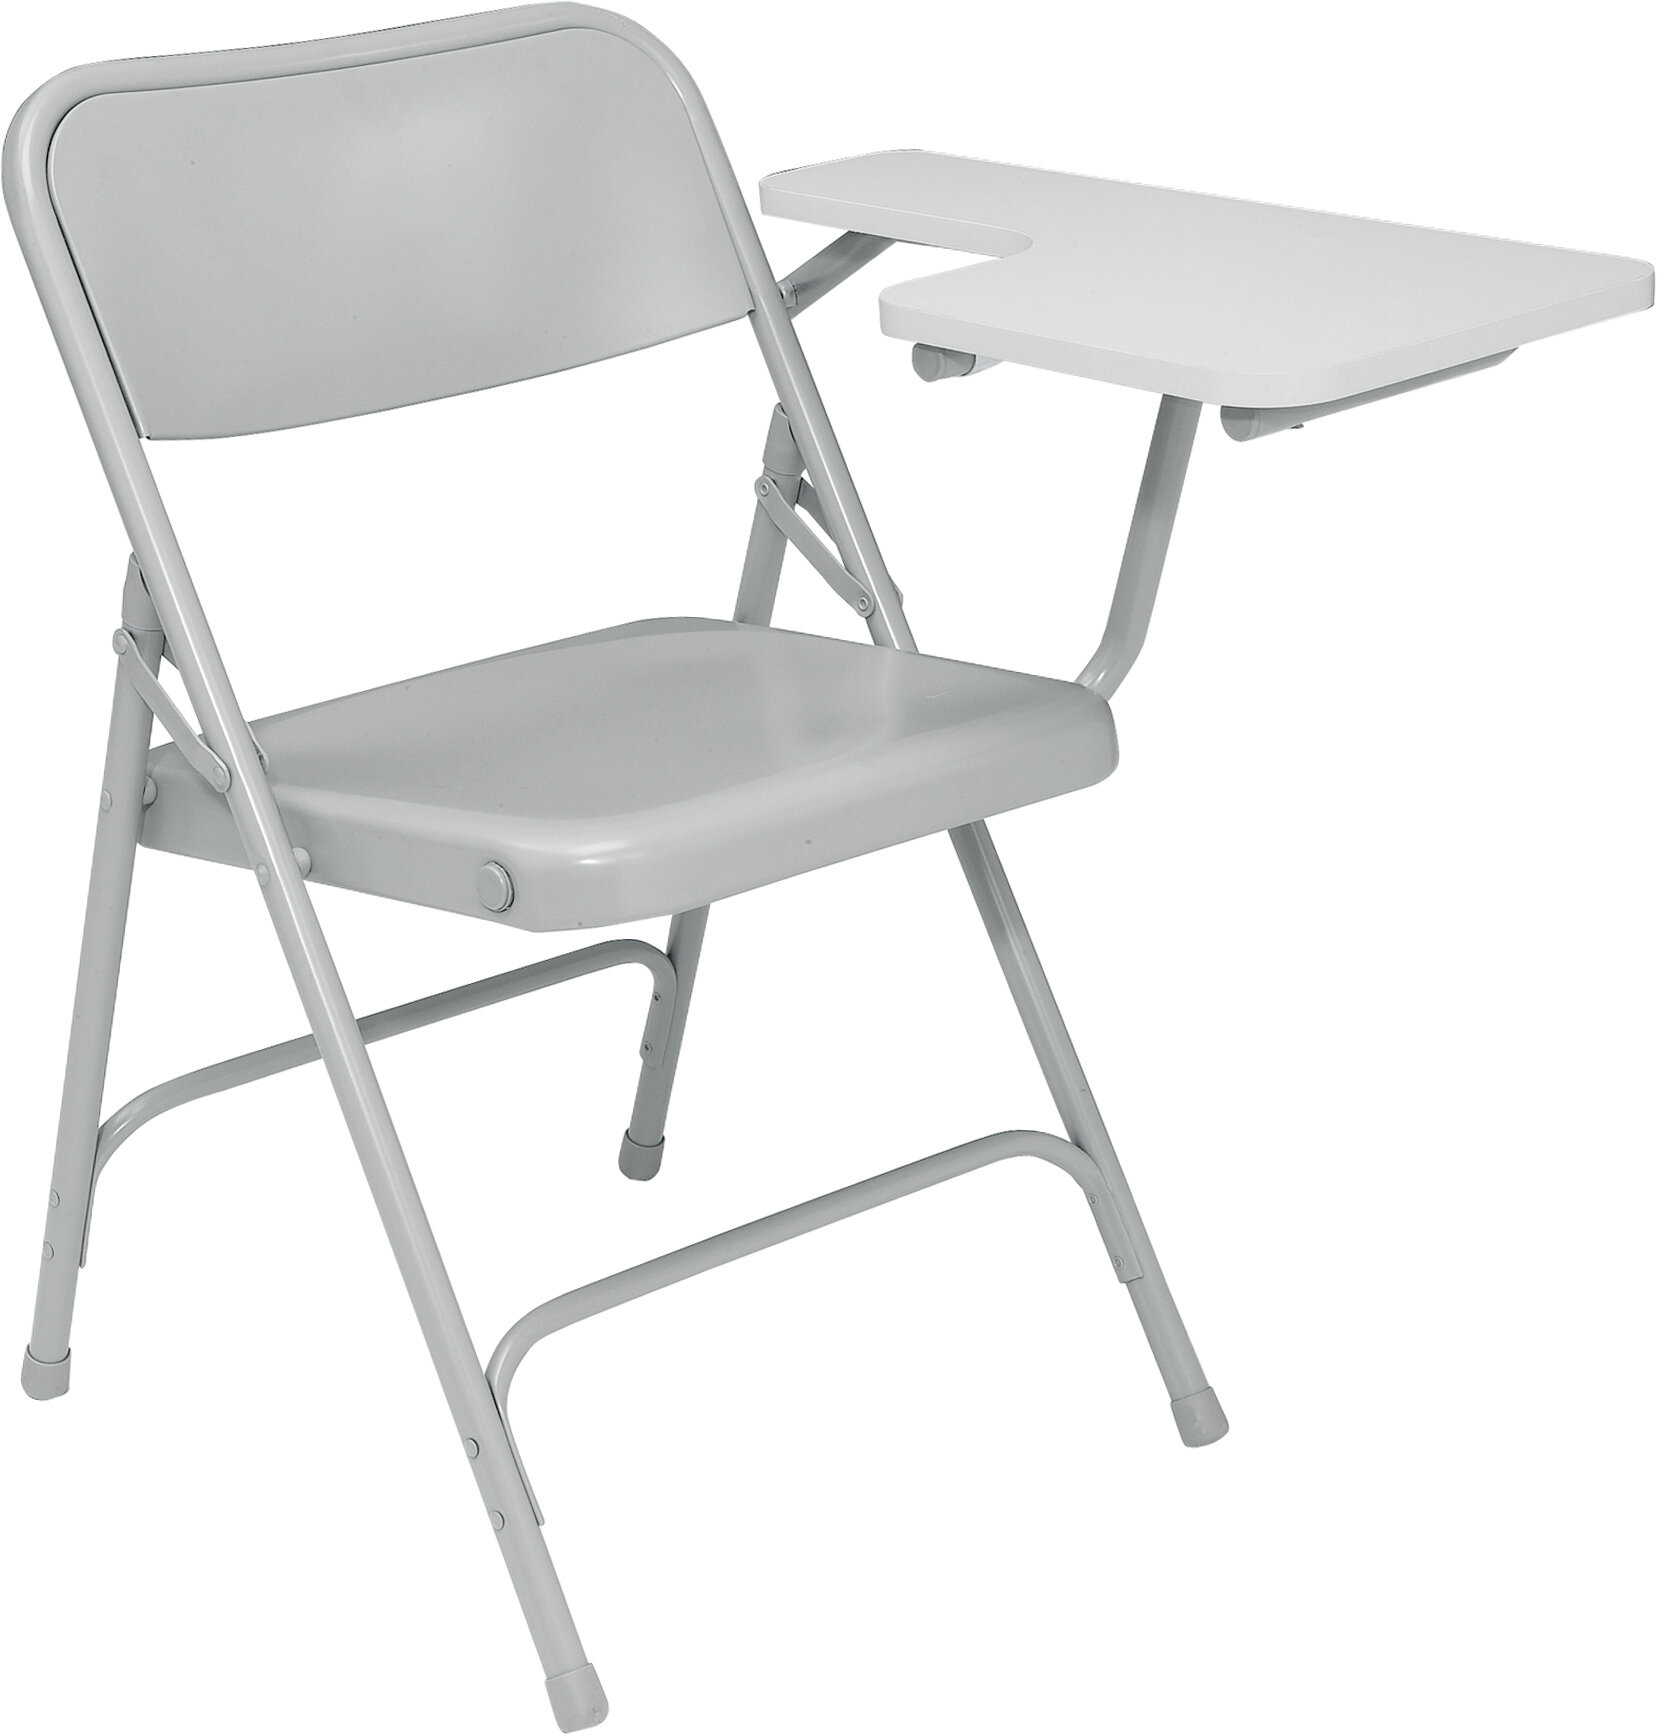 National Public Seating 5200 Series Steel Folding Chair with